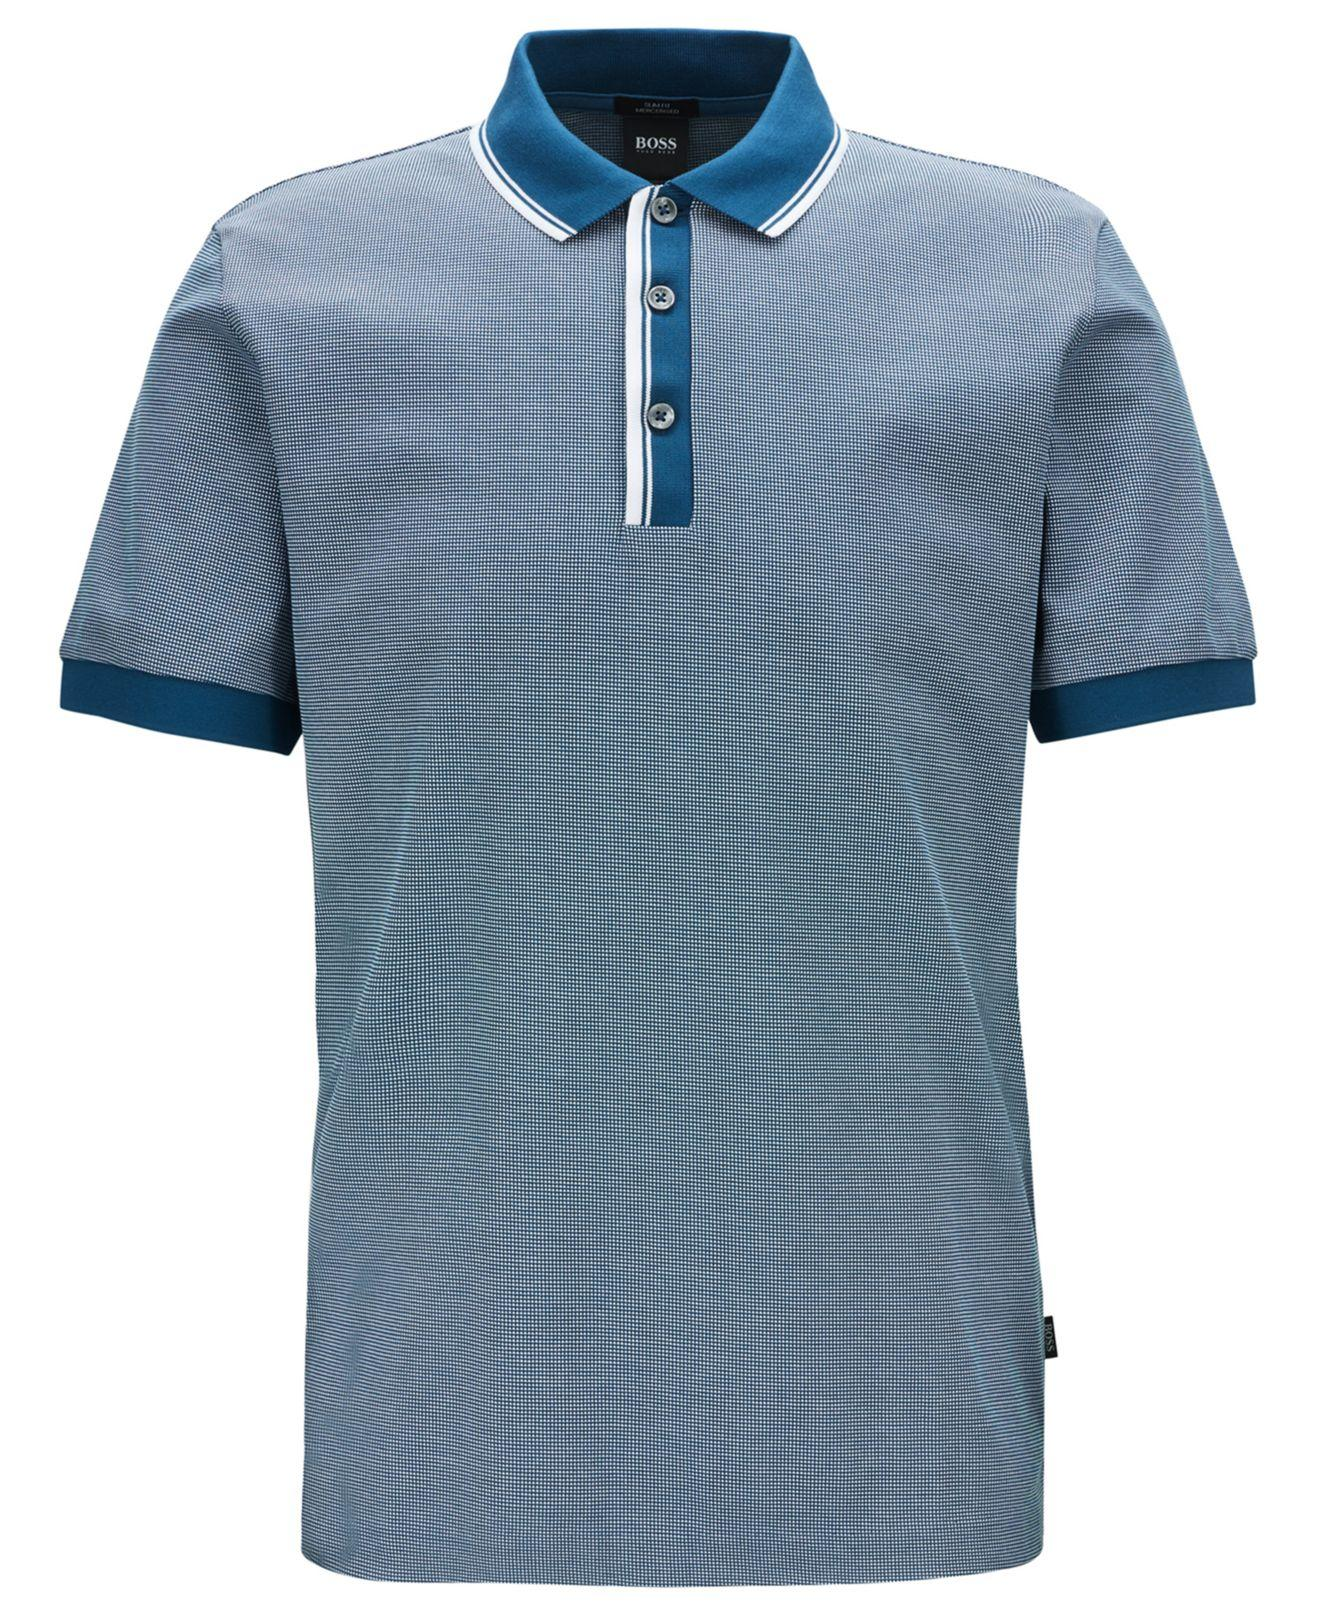 91bbd8f6b BOSS Phillipson 57 Slim-fit Cotton Polo Shirt in Blue for Men - Lyst